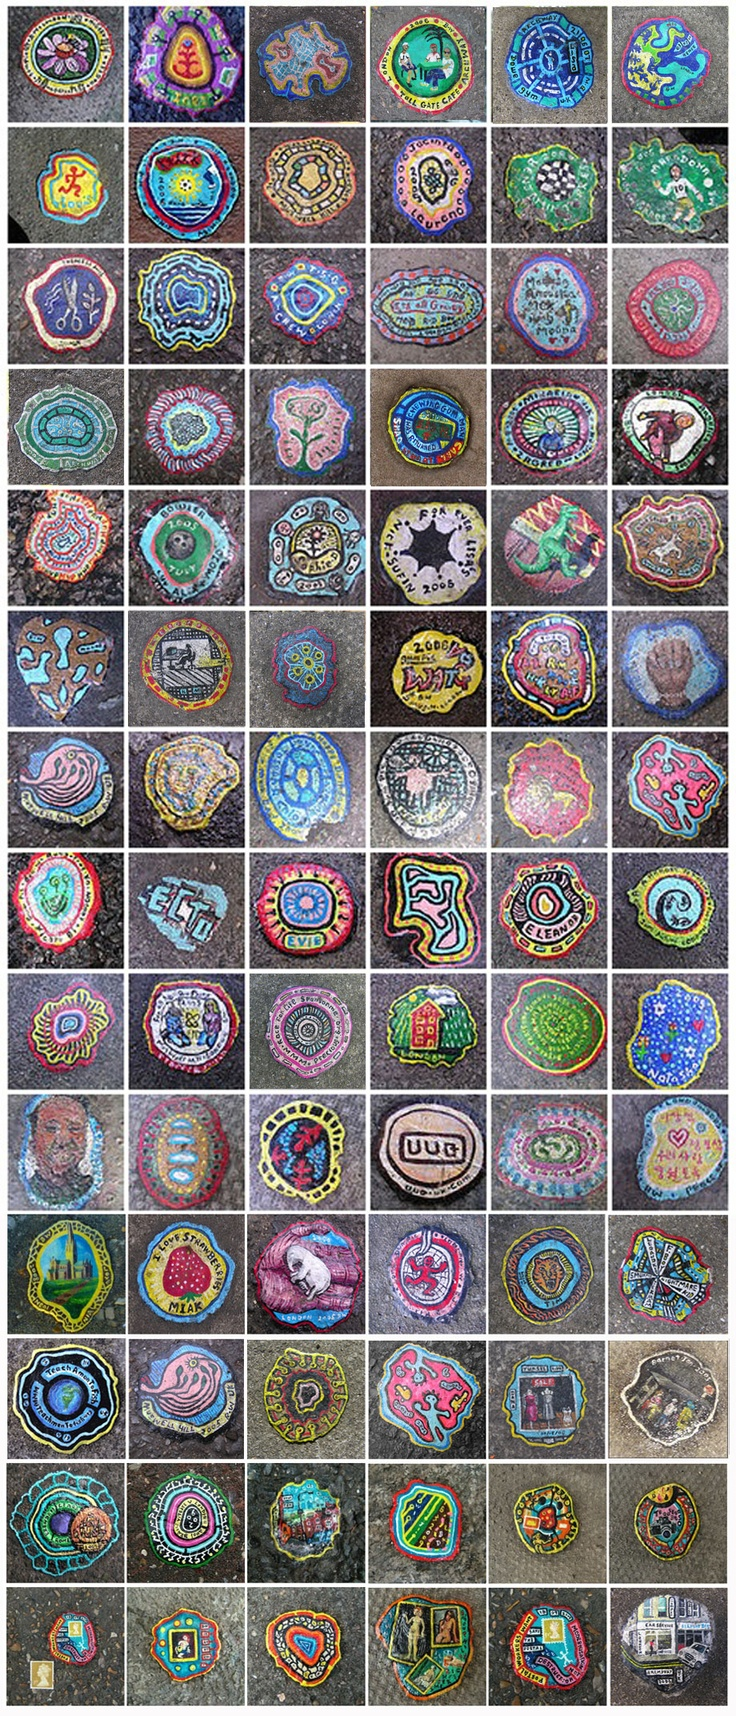 Ben Wilson, outsider artist of London, his canvas? chewing gum on the pavement. Outsider Art rules http://restreet.altervista.org/ben-wilson-dipinge-sulle-gomme-da-masticare/